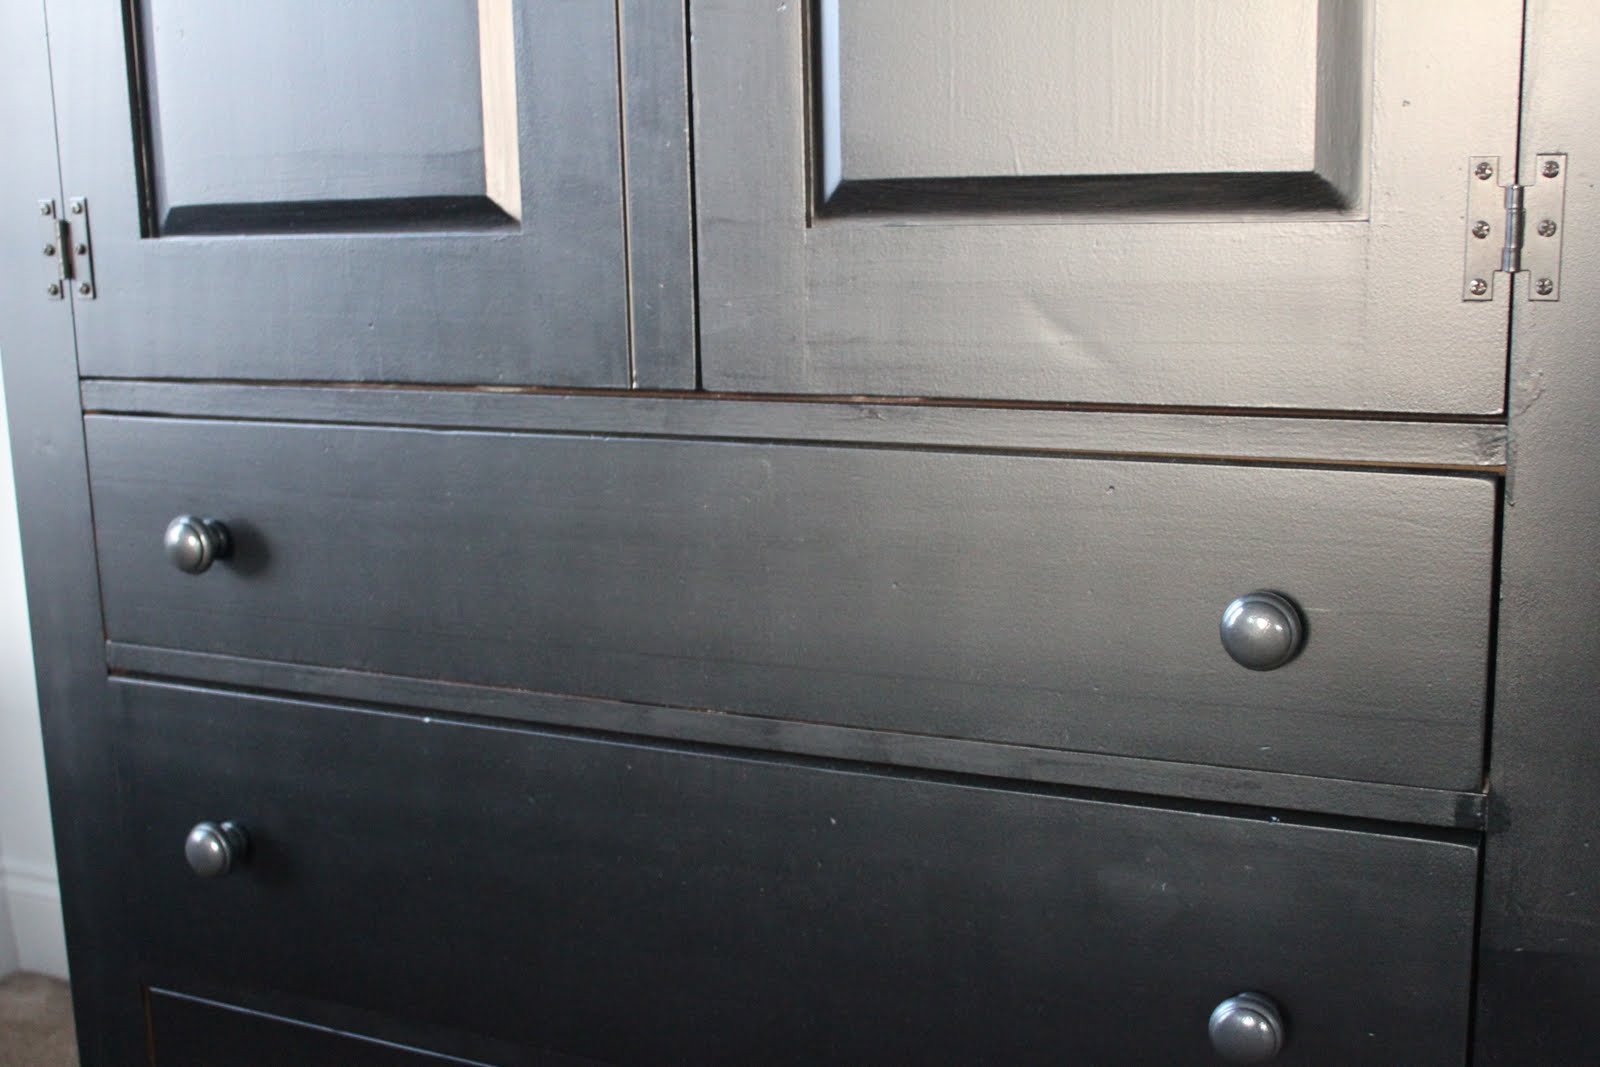 How The Spray Painted Wood Knobs Look Back On The Painted Furniture